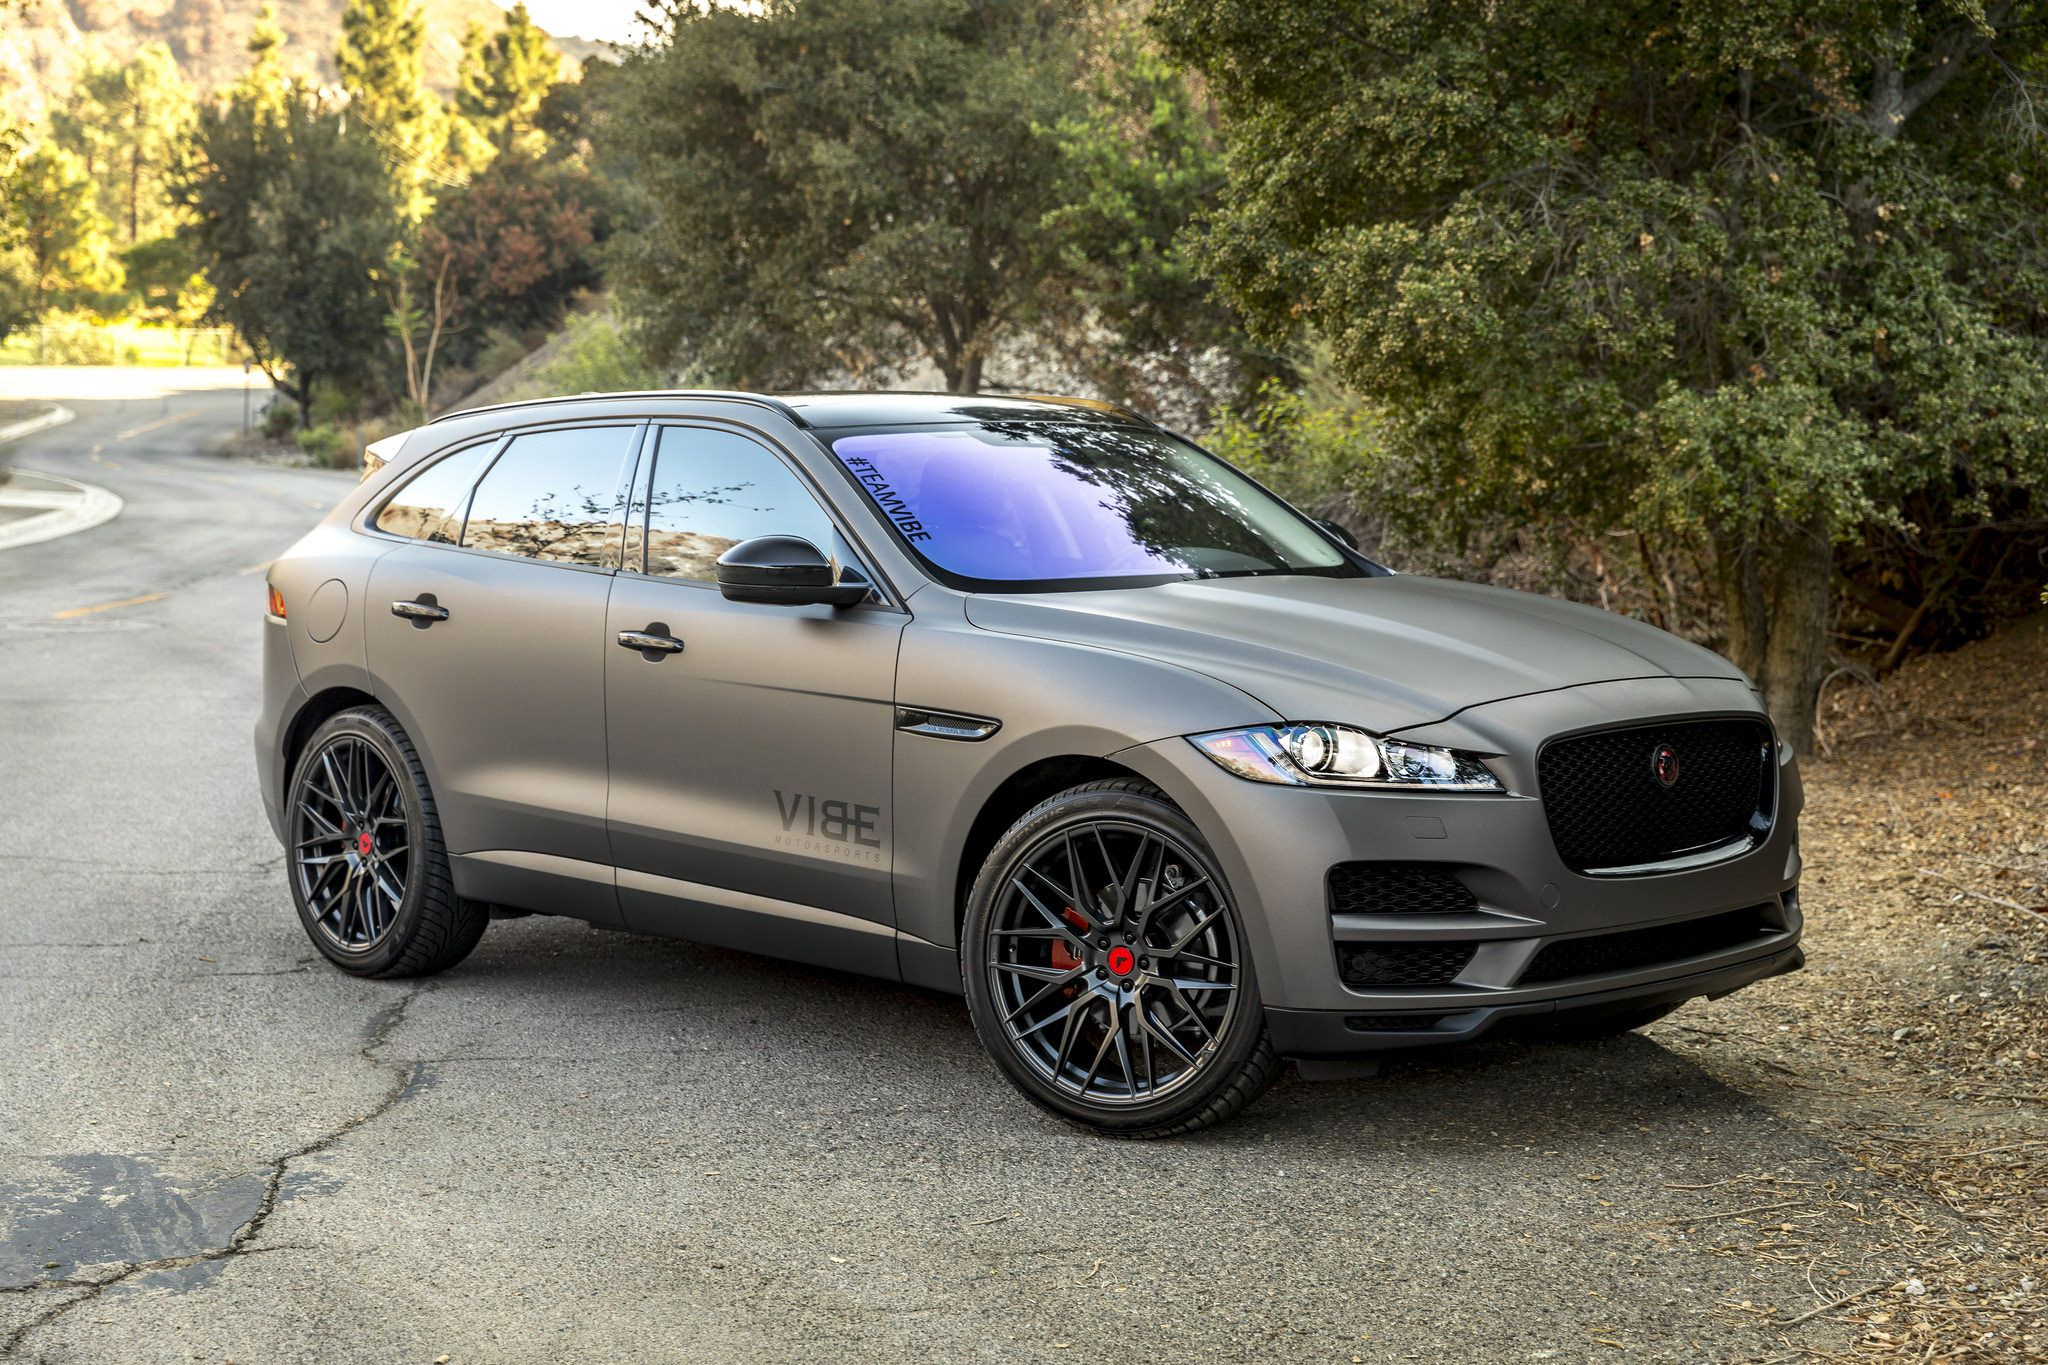 Jaguar F Pace With Vorsteiner V Ff 107 Carbon Graphite R22 Jaguar Suv Jaguar Jaguar Car